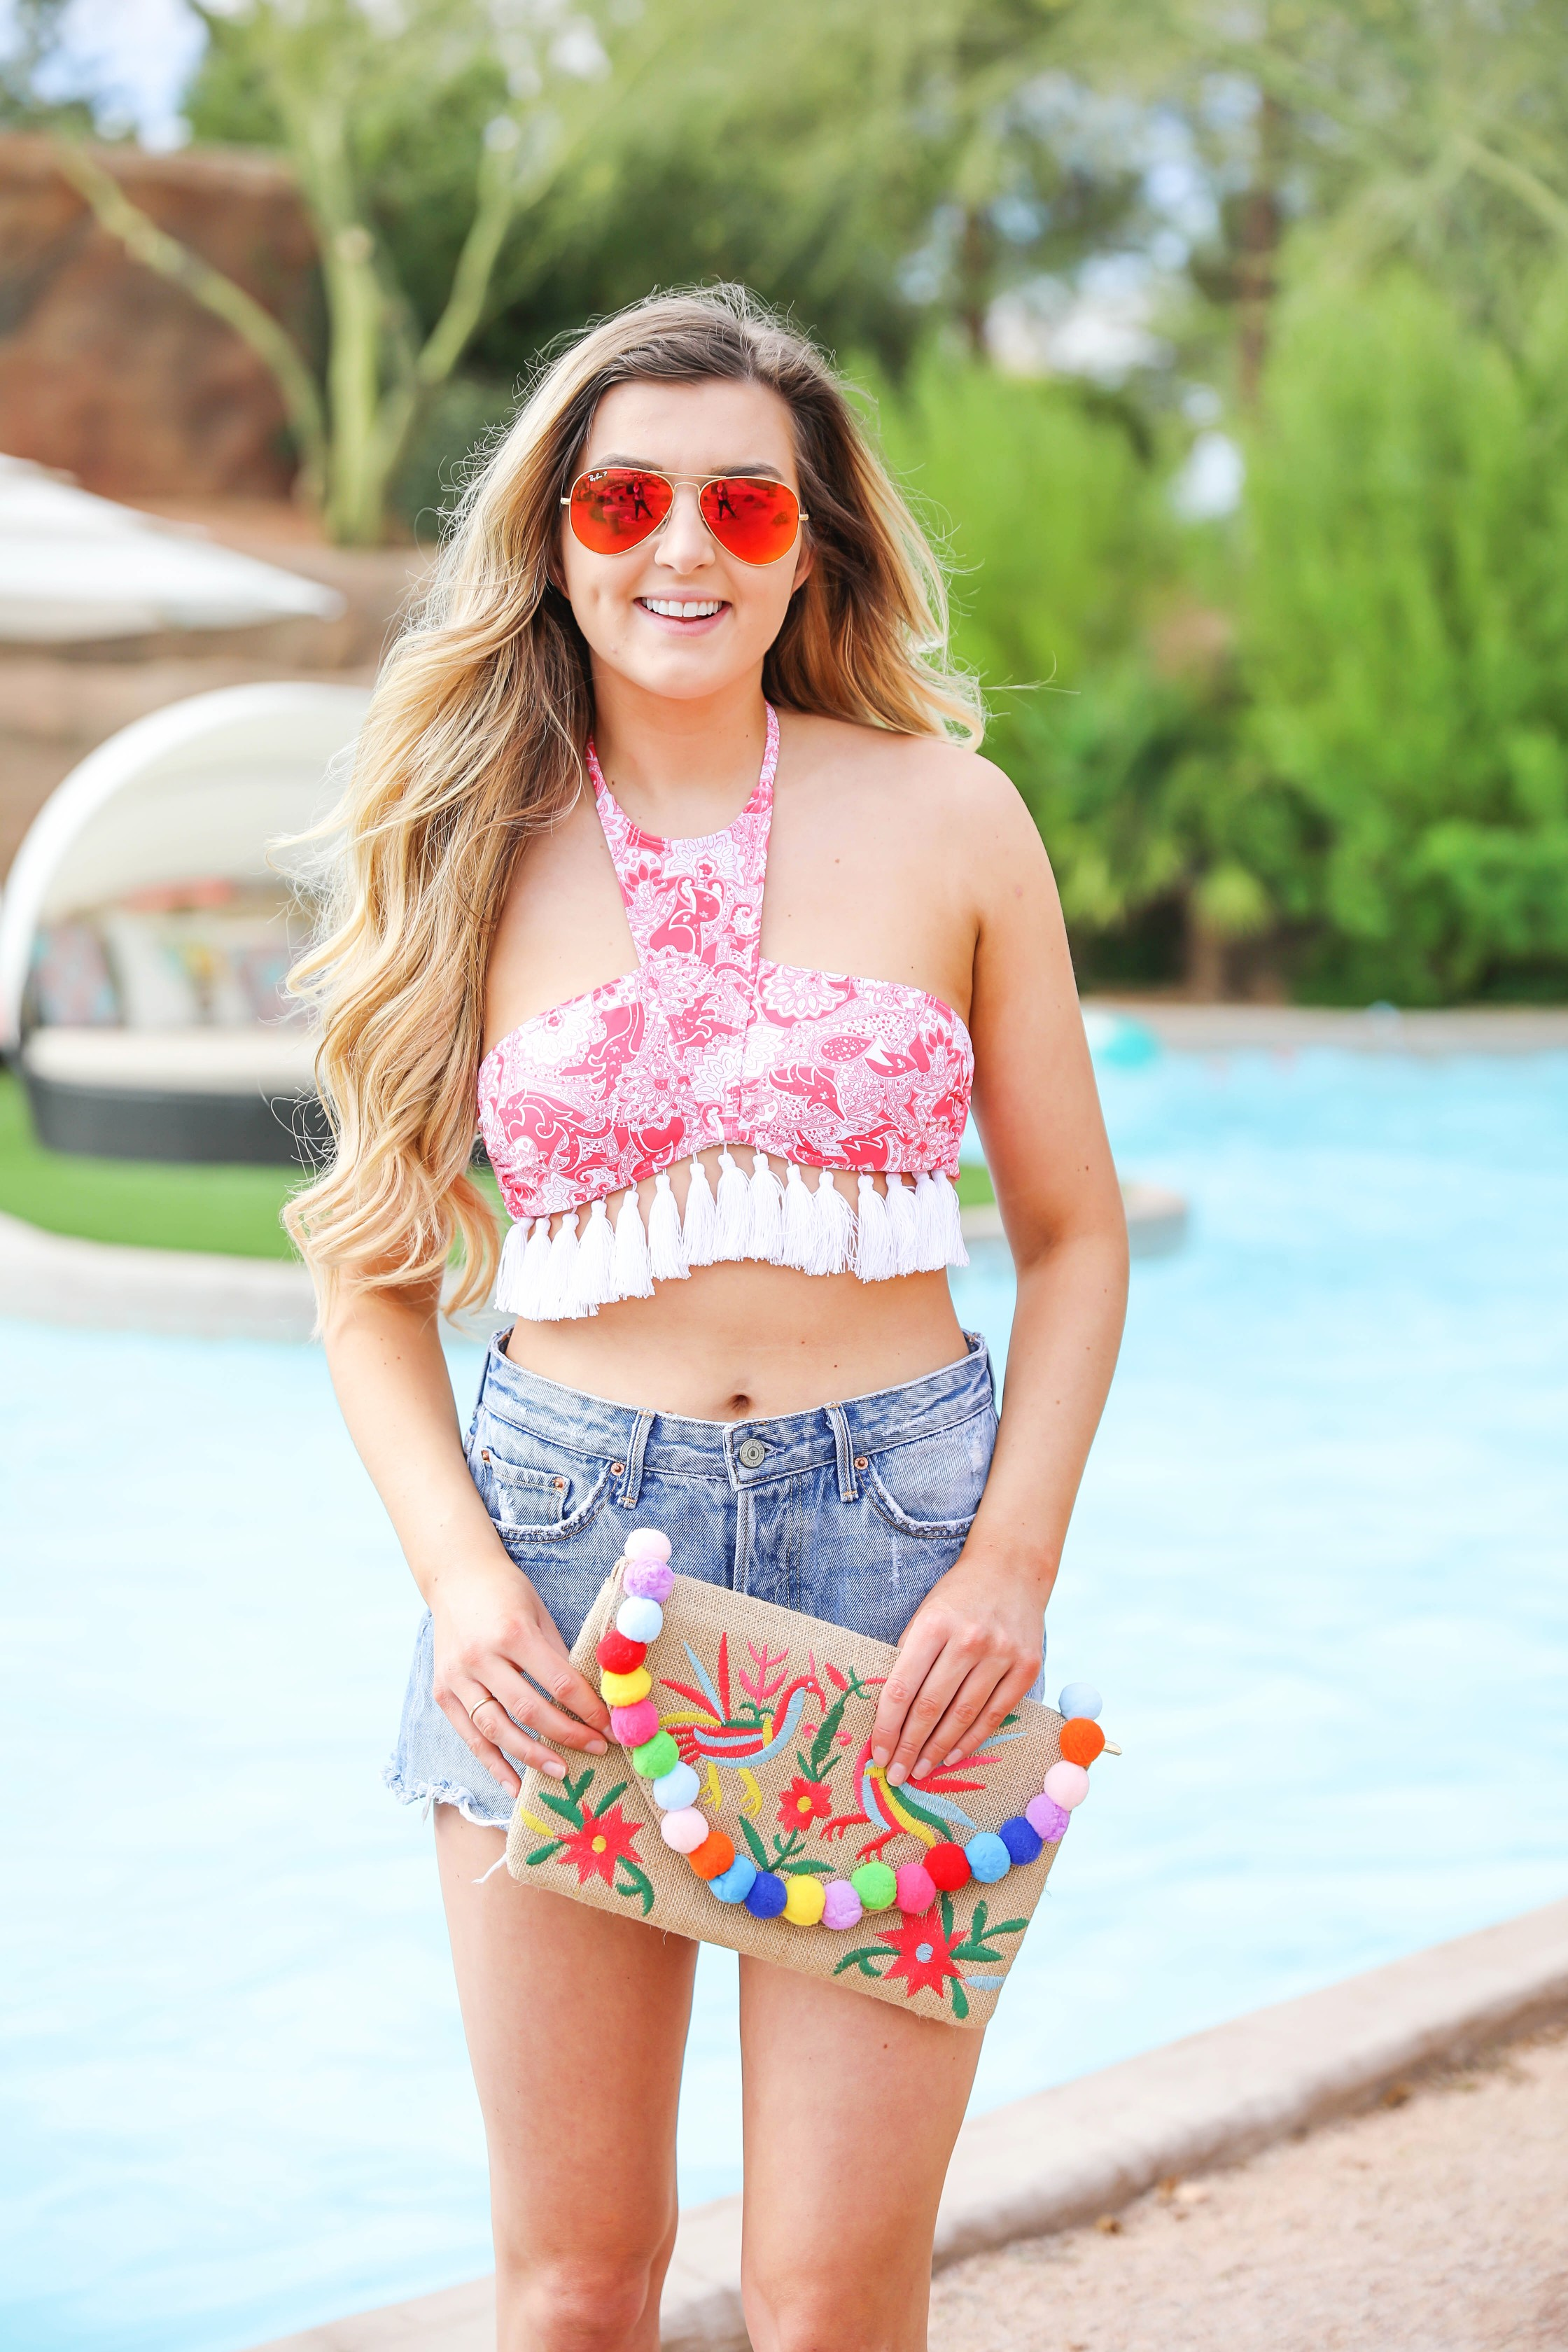 Red Dress Boutique swimsuit! Cute pink tassel bikini with mom shorts! Cute spring break outfit idea on fashion blog daily dose of charm by lauren lindmark